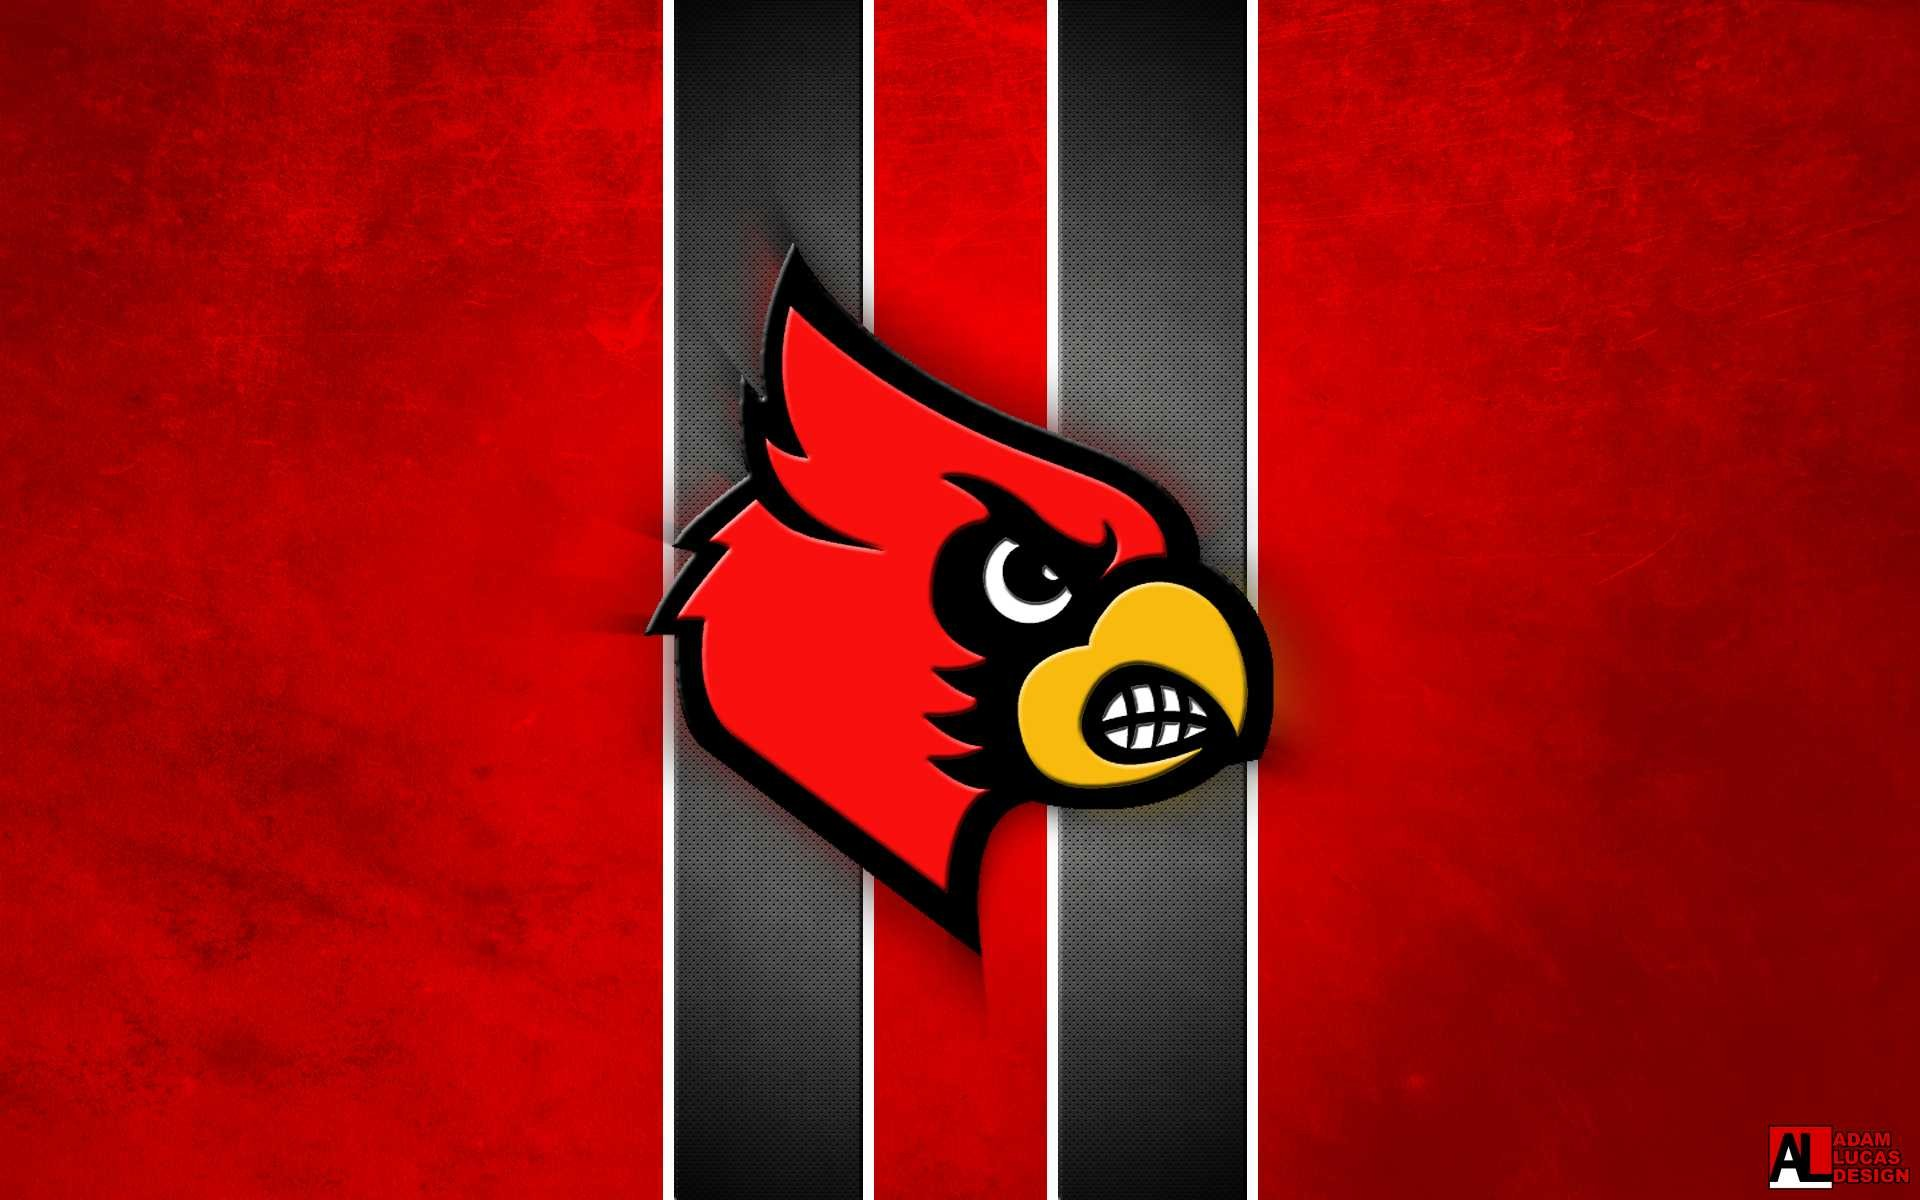 Res: 1920x1200, Moved 4k Hd Louisville Cardinals Wallpaper For Computer Pics